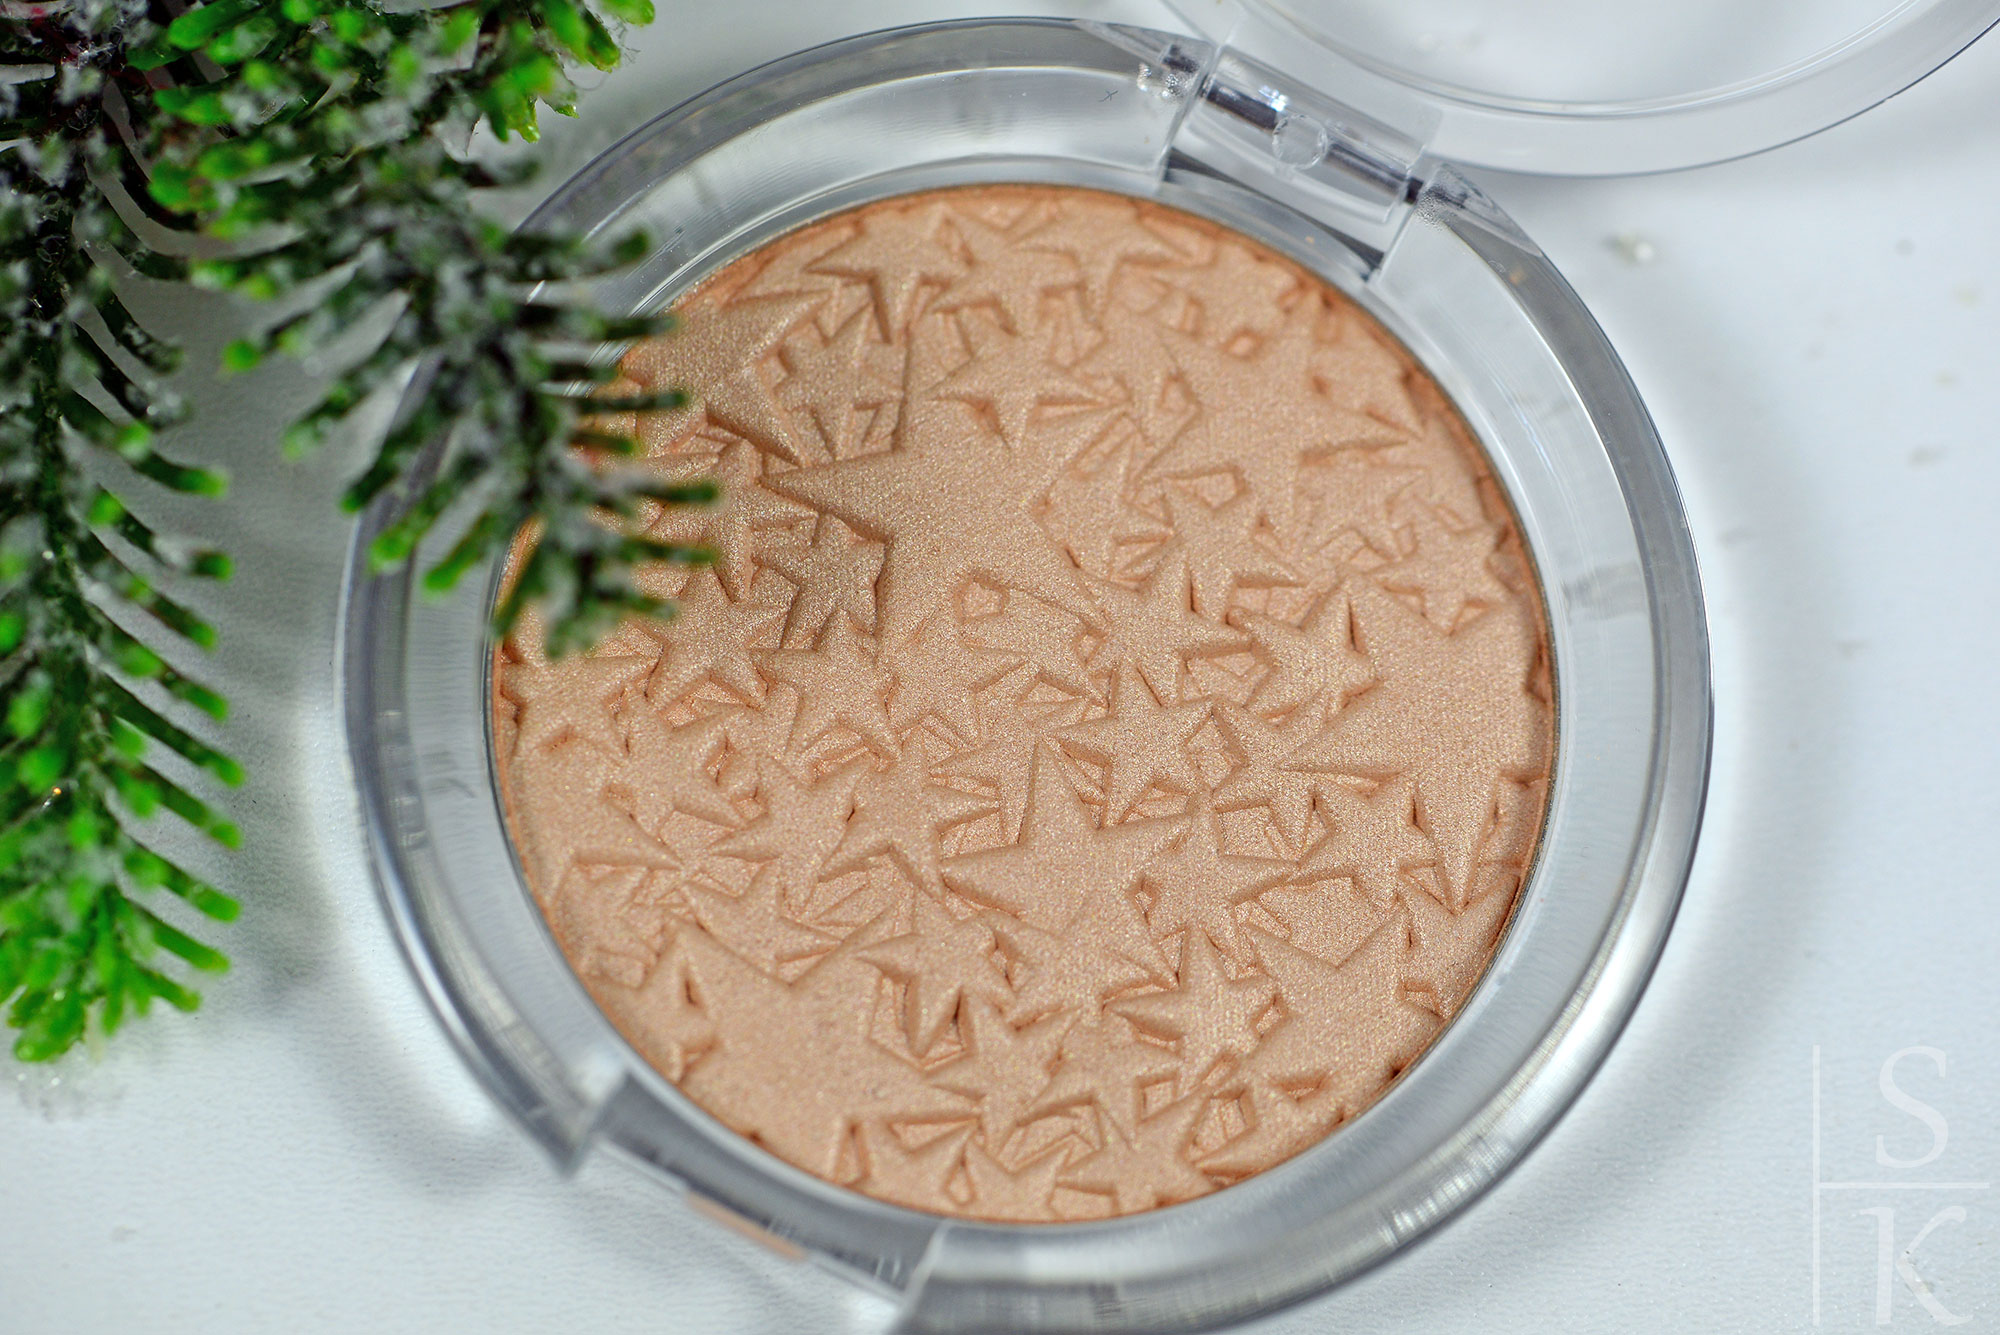 Essence-Merry-Berry-Highlighter-Powder-04